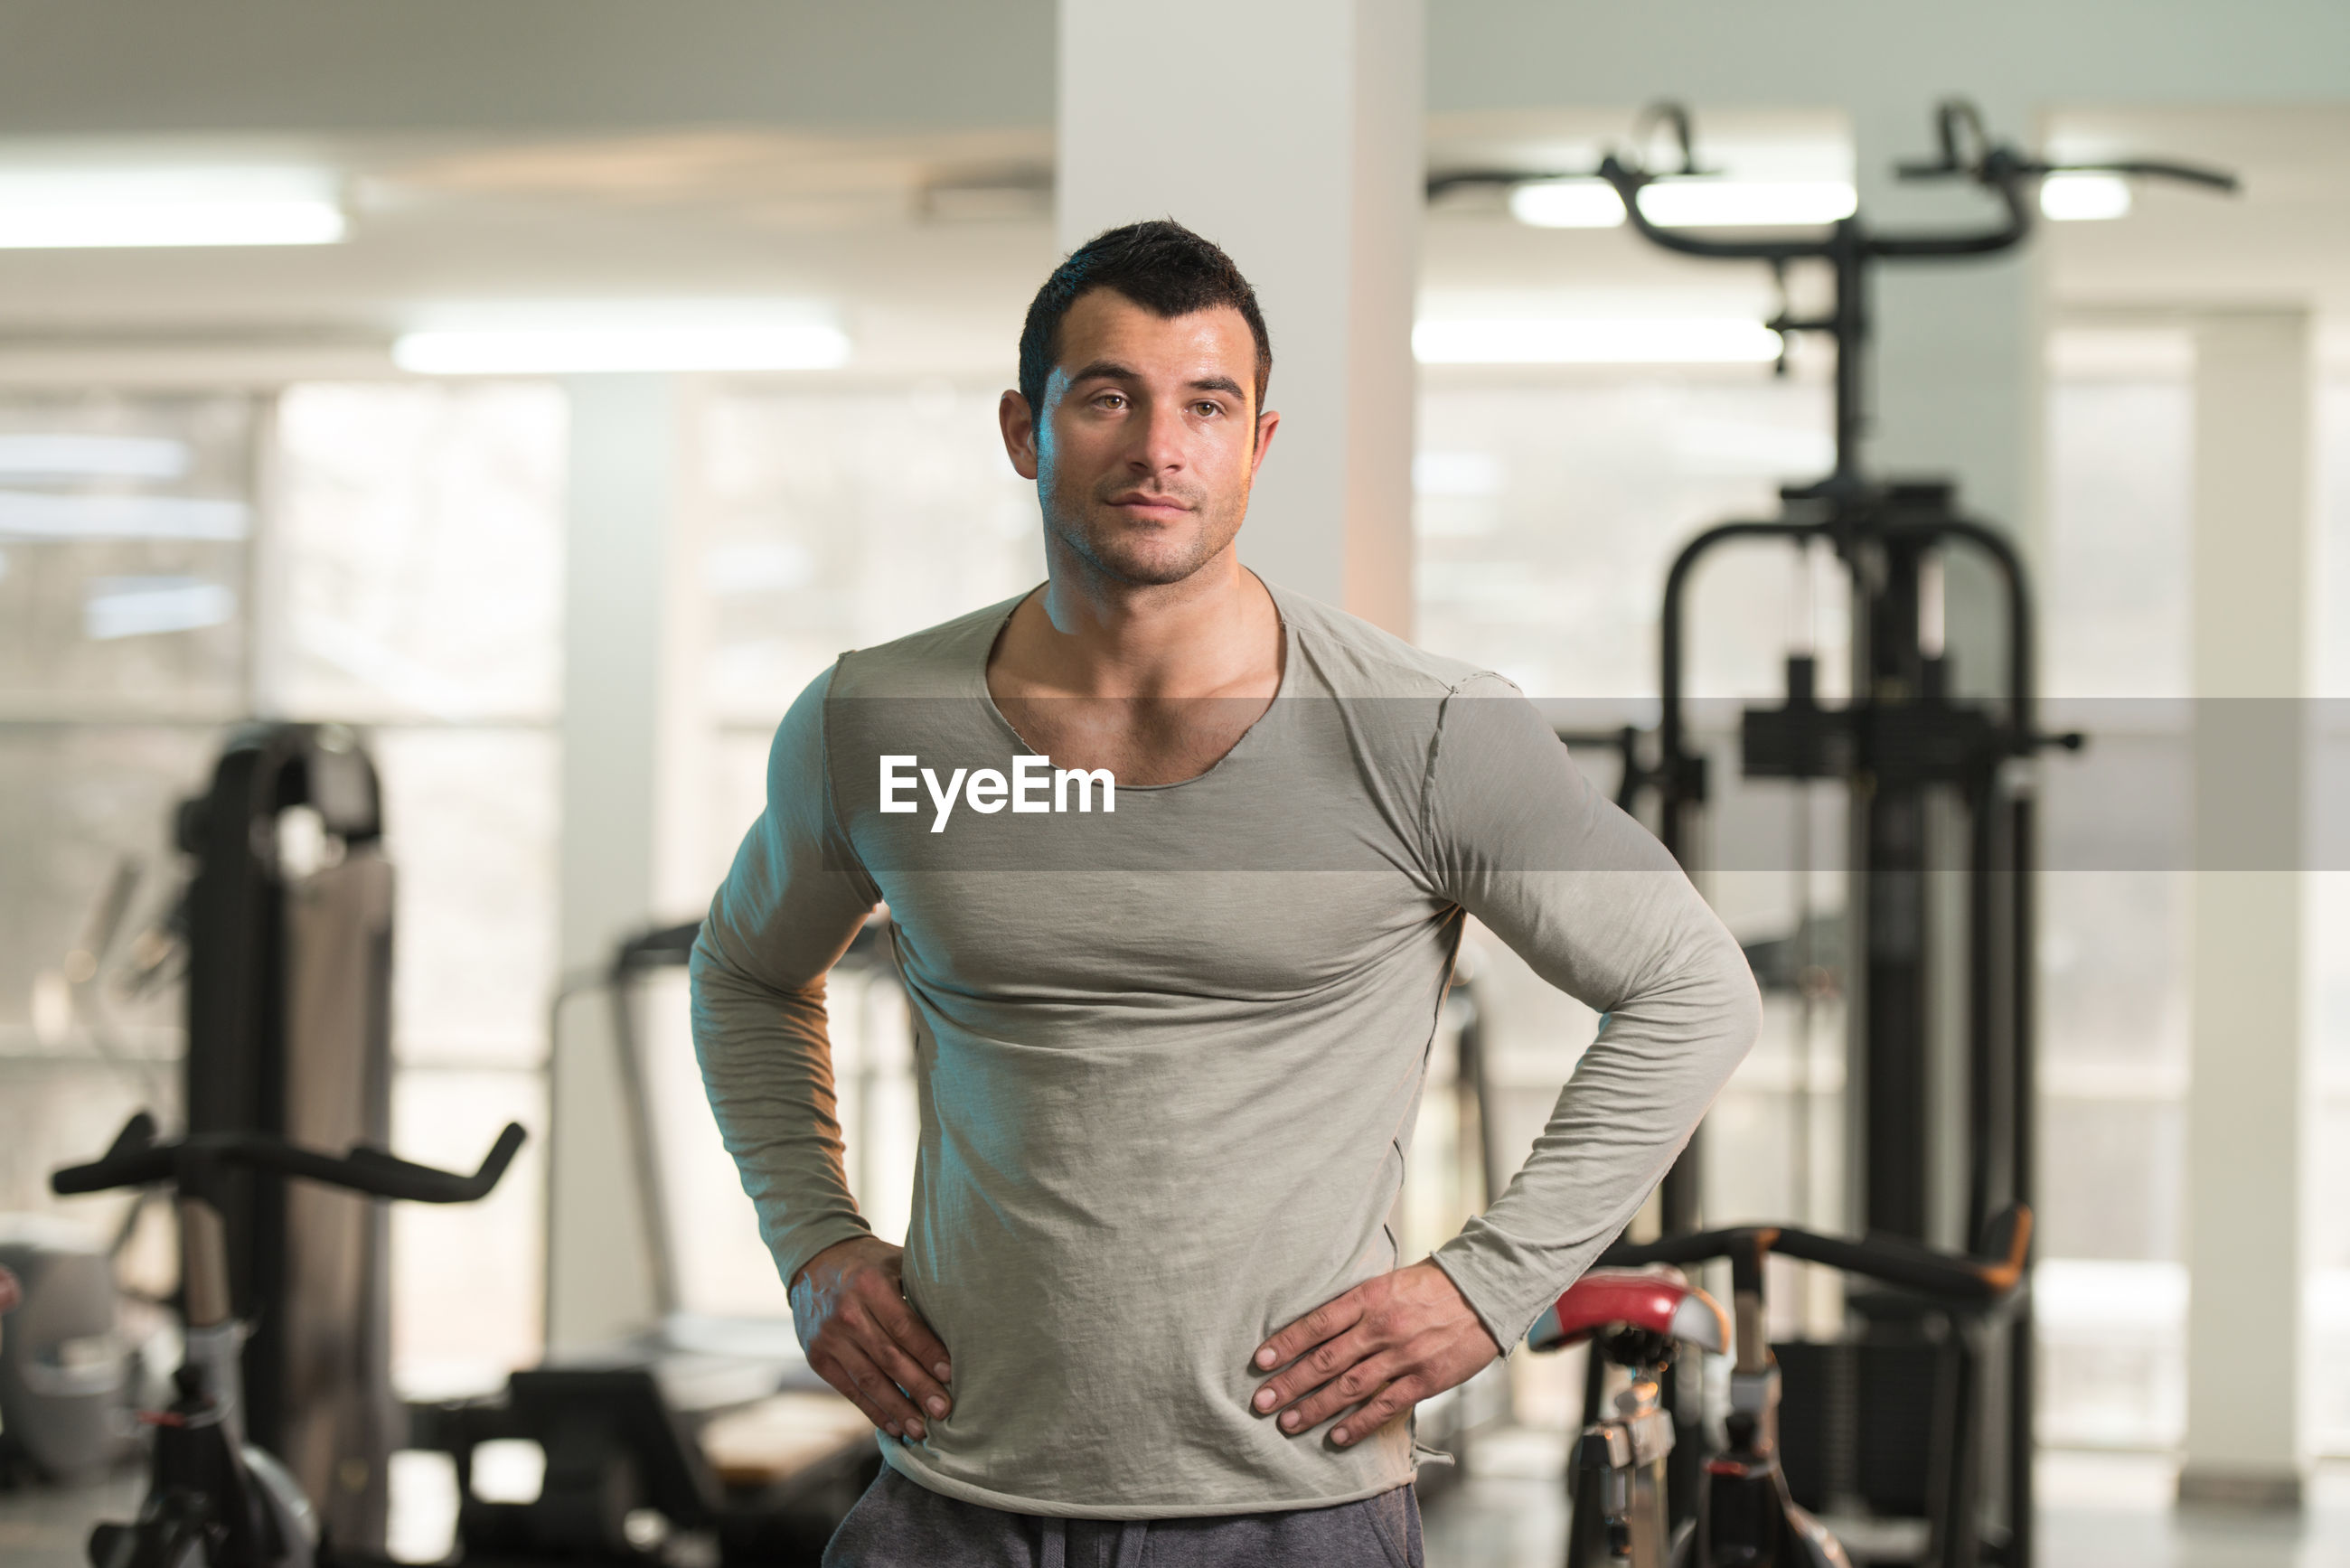 Muscular man standing in gym